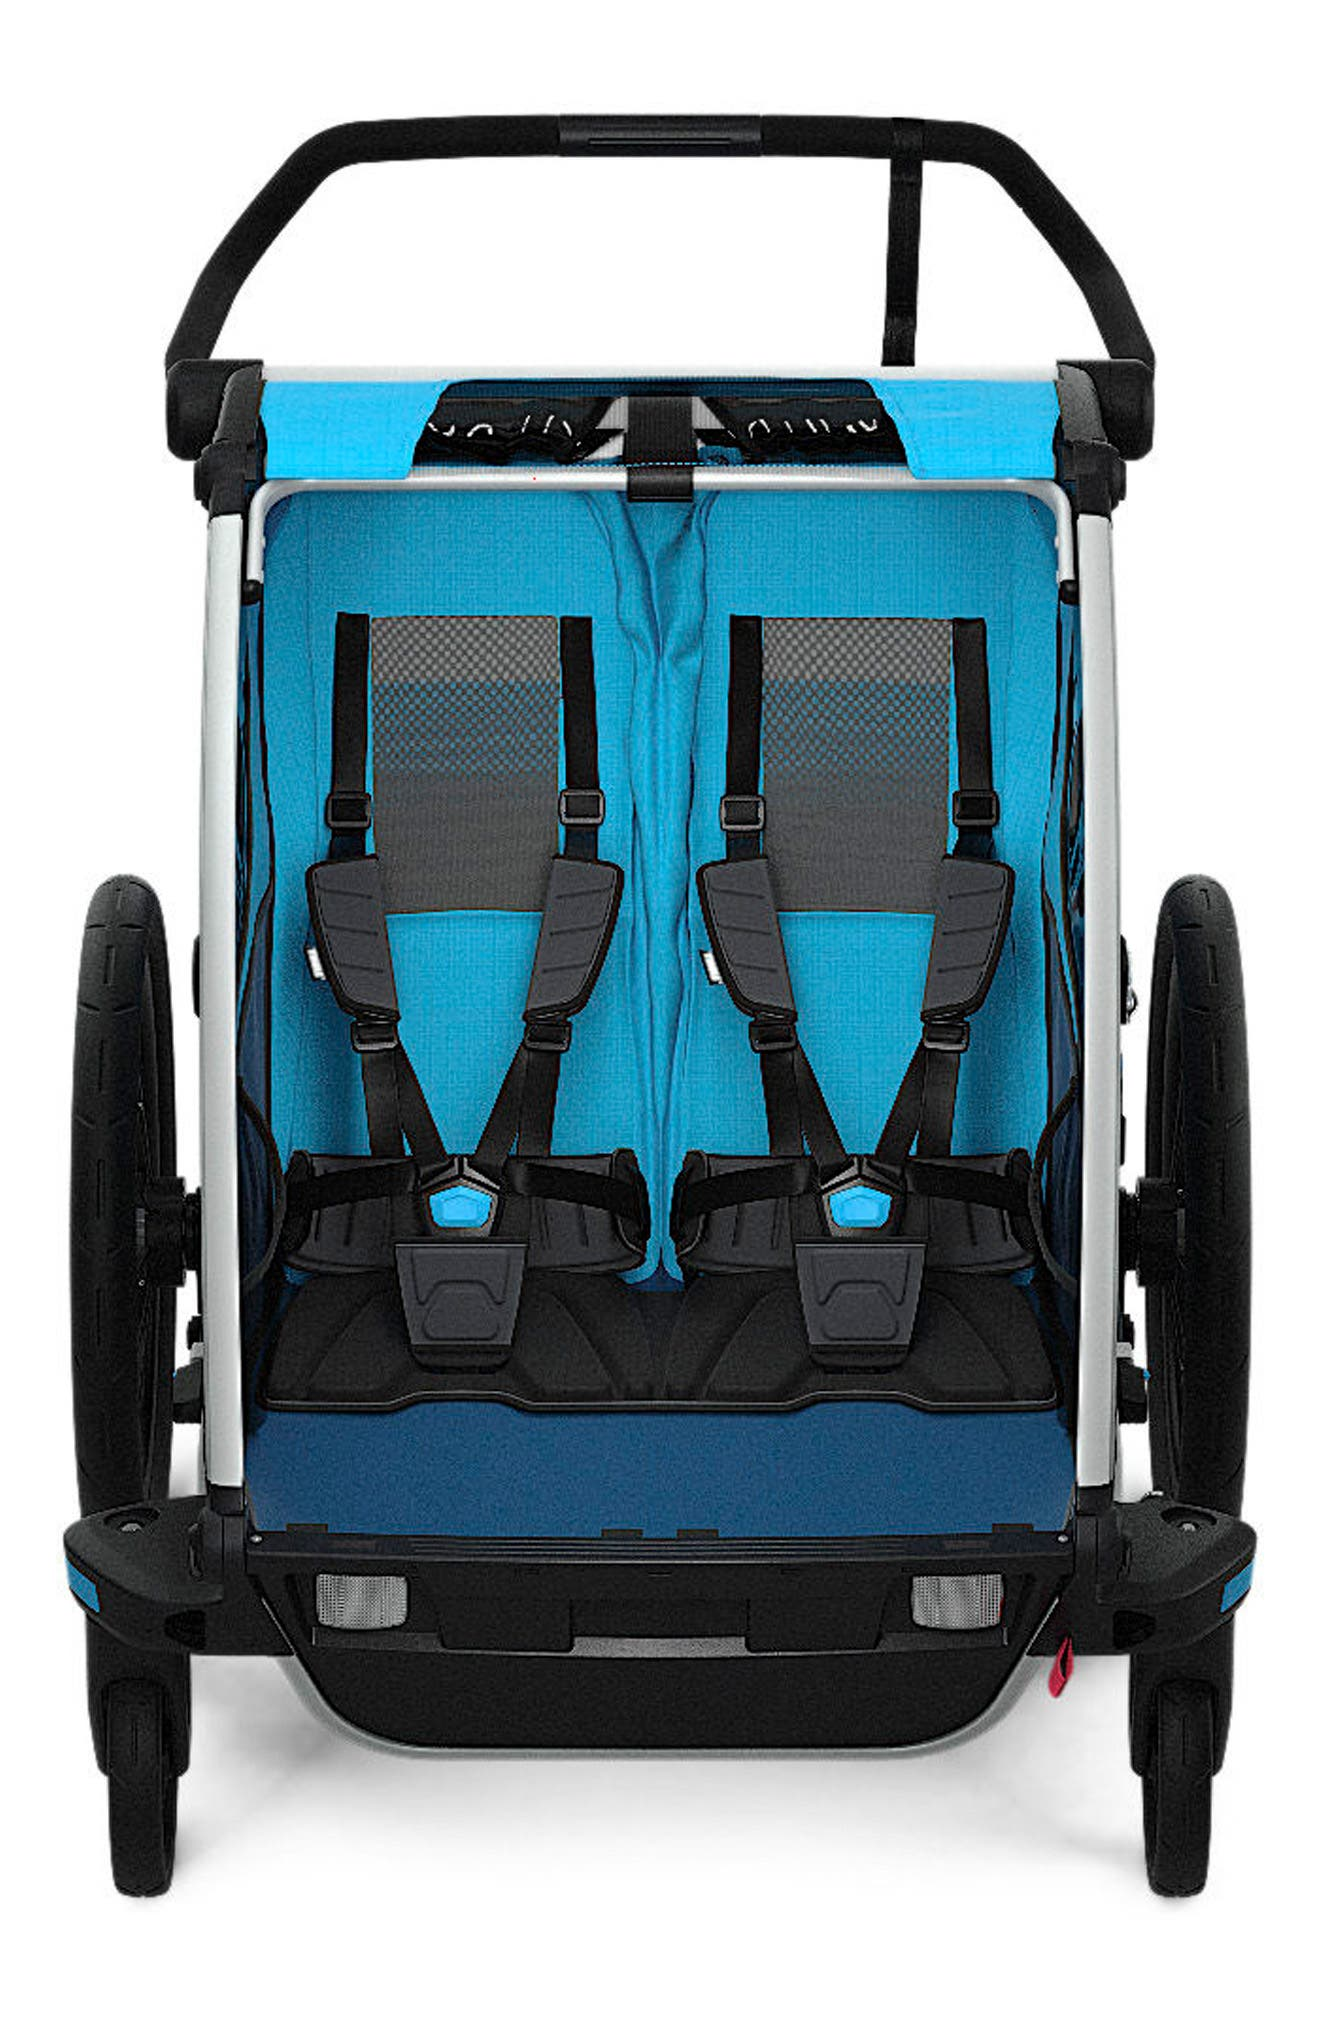 Chariot Cross 2 Multisport Double Cycle Trailer/Stroller,                             Main thumbnail 1, color,                             THULE BLUE